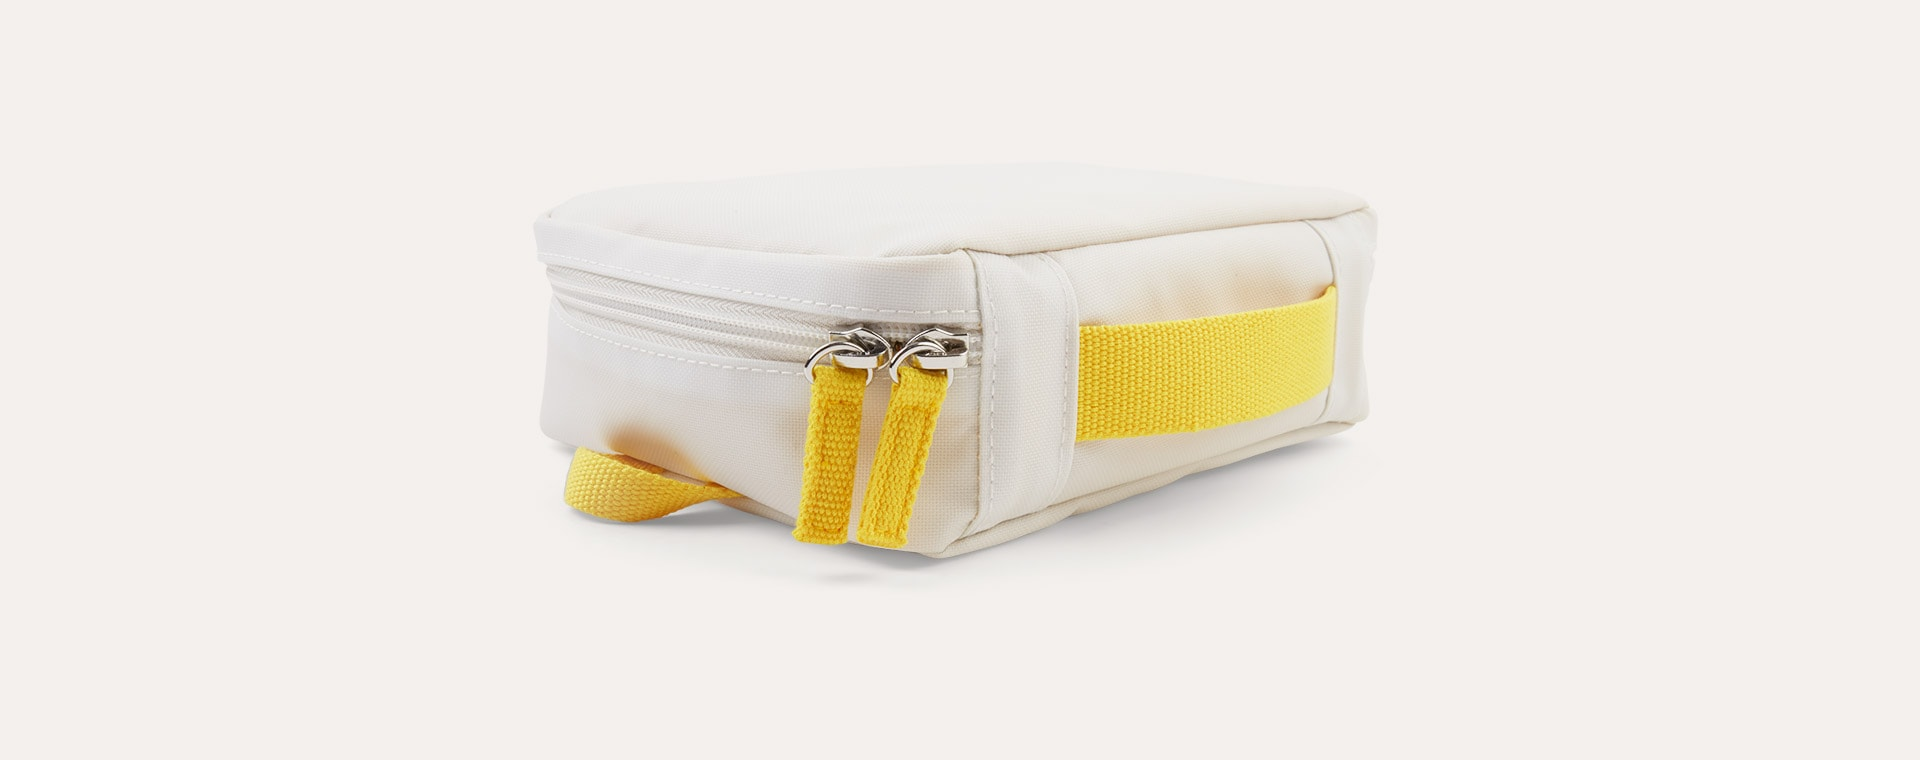 White / Lemon EKOBO Go Repet Lunch Bag